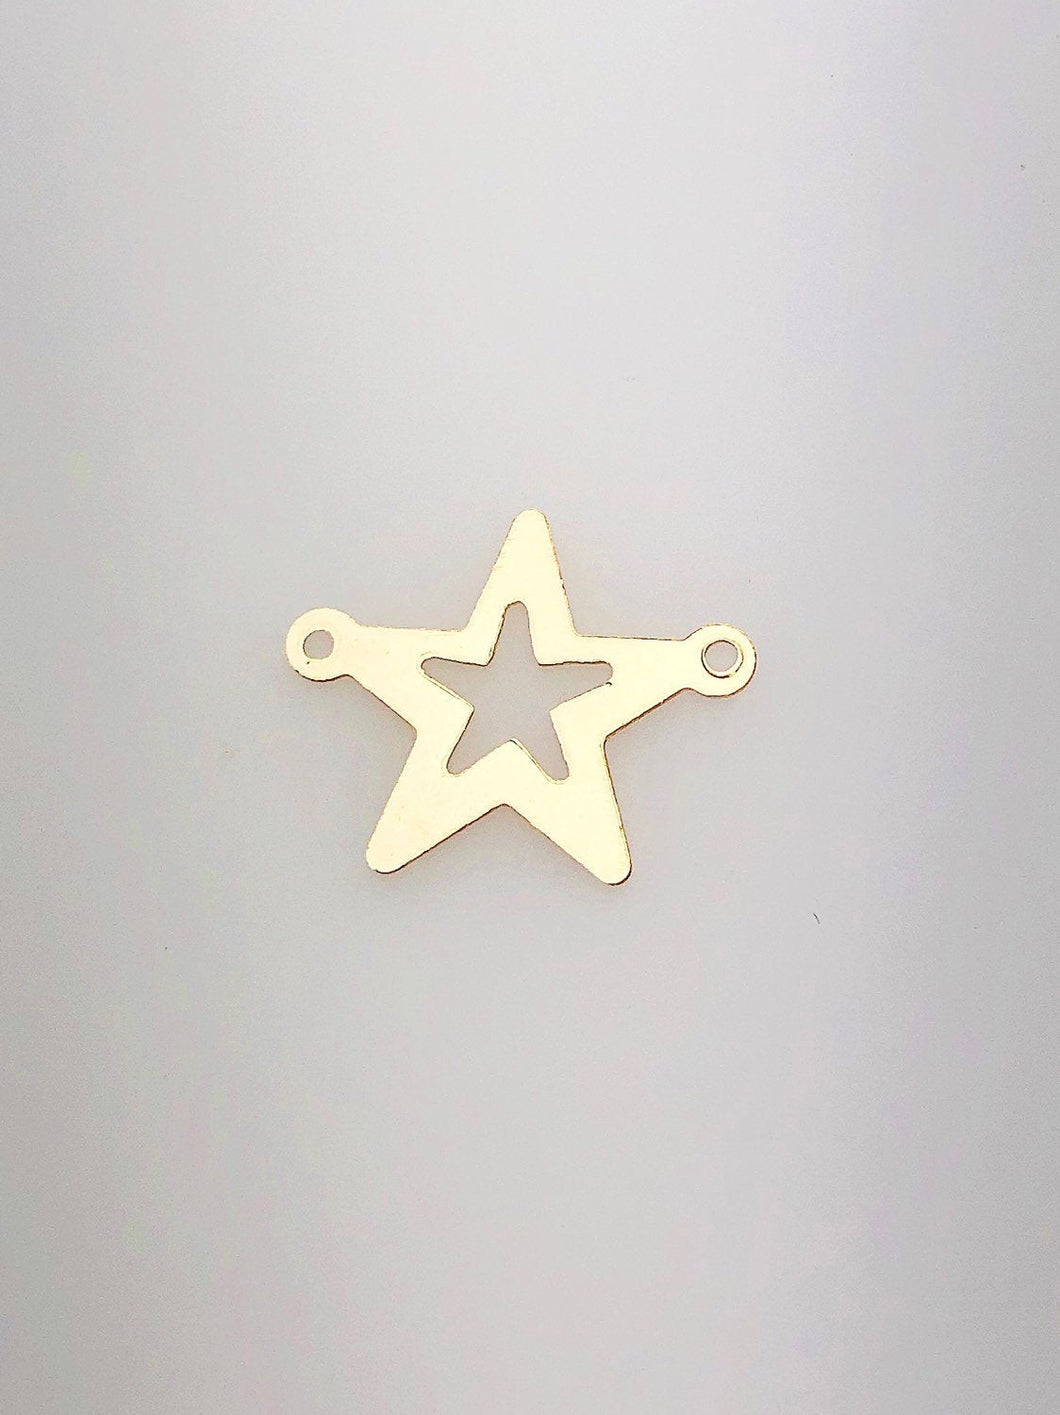 14K Gold Fill Star Charm w/ 2 Rings, 16.5mm, Made in USA - 62